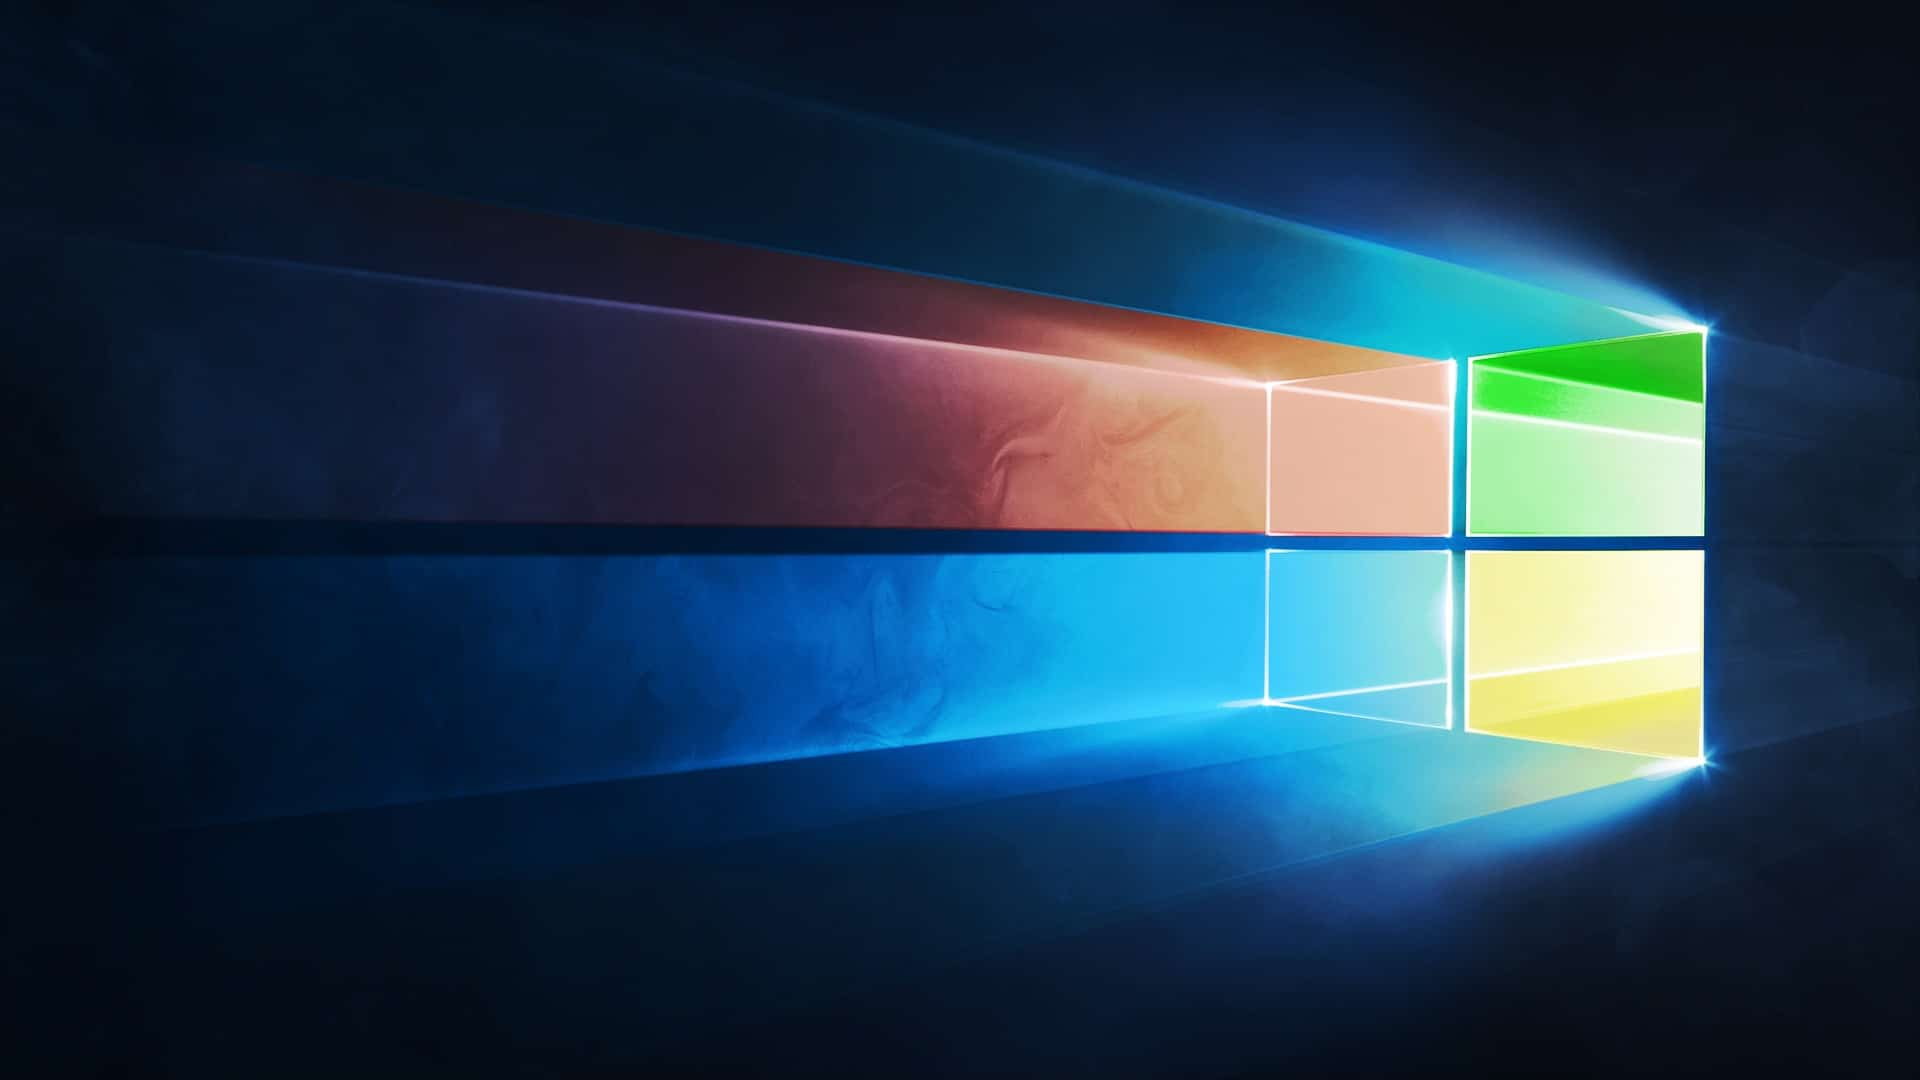 better windows 10 wallpaper by kirill2485 d95e6hs